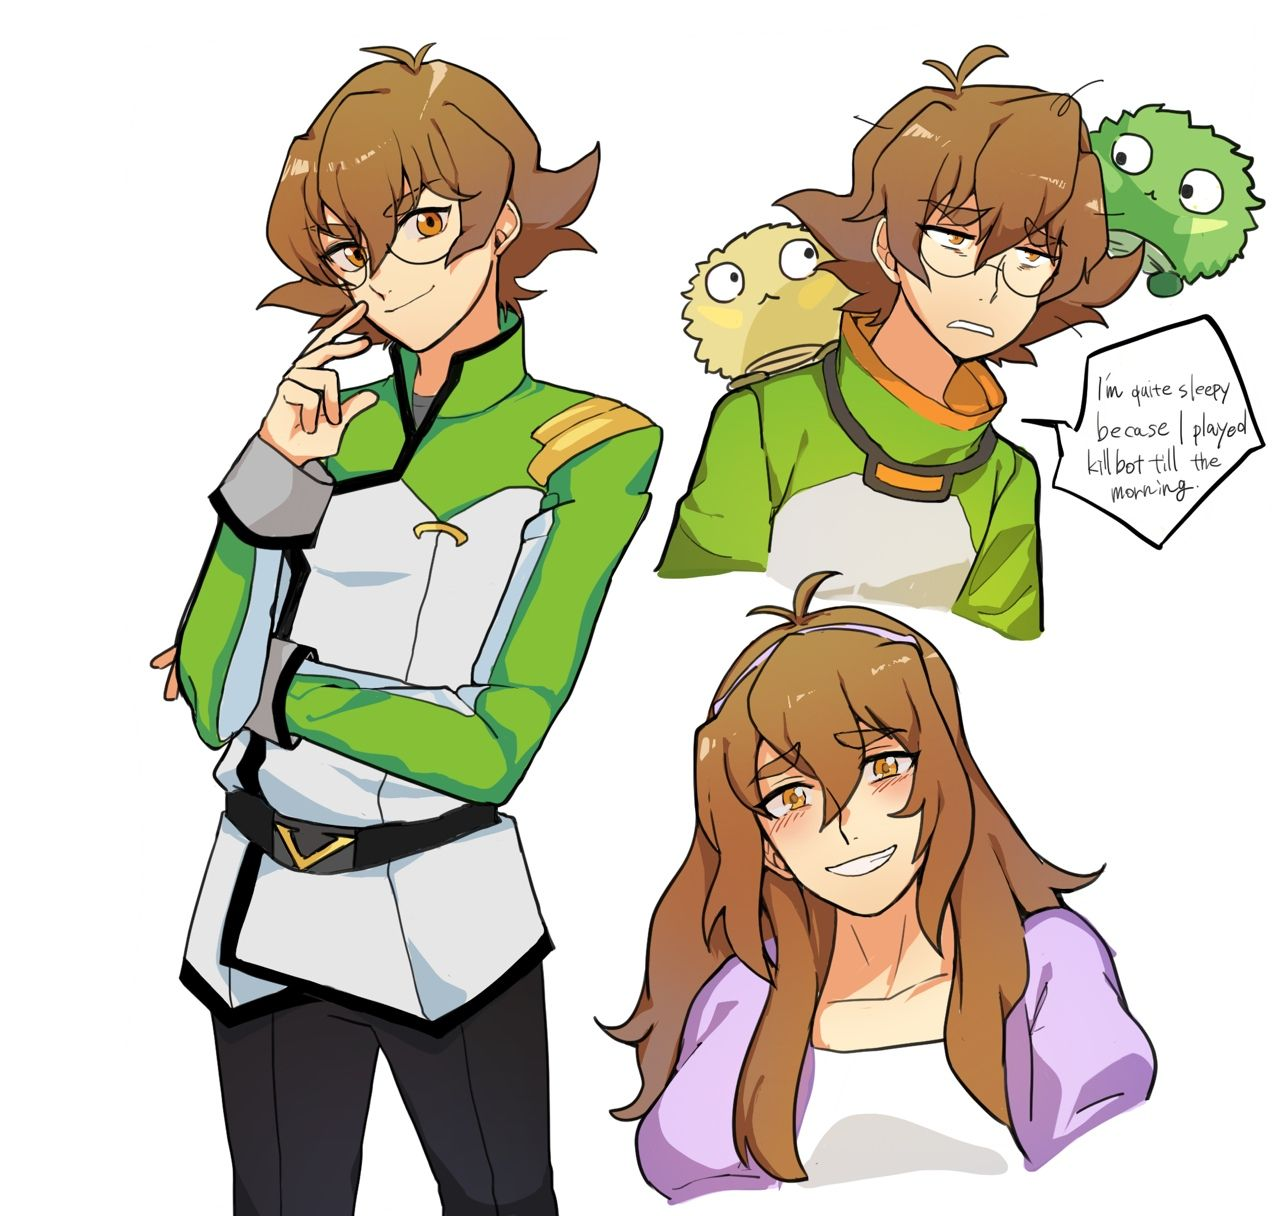 Pidge Katie Holt And Her Moments In Her New Green Galaxy Garrison Uniform From Voltron Legendary Defender Voltron Voltron Legendary Defender Voltron Comics